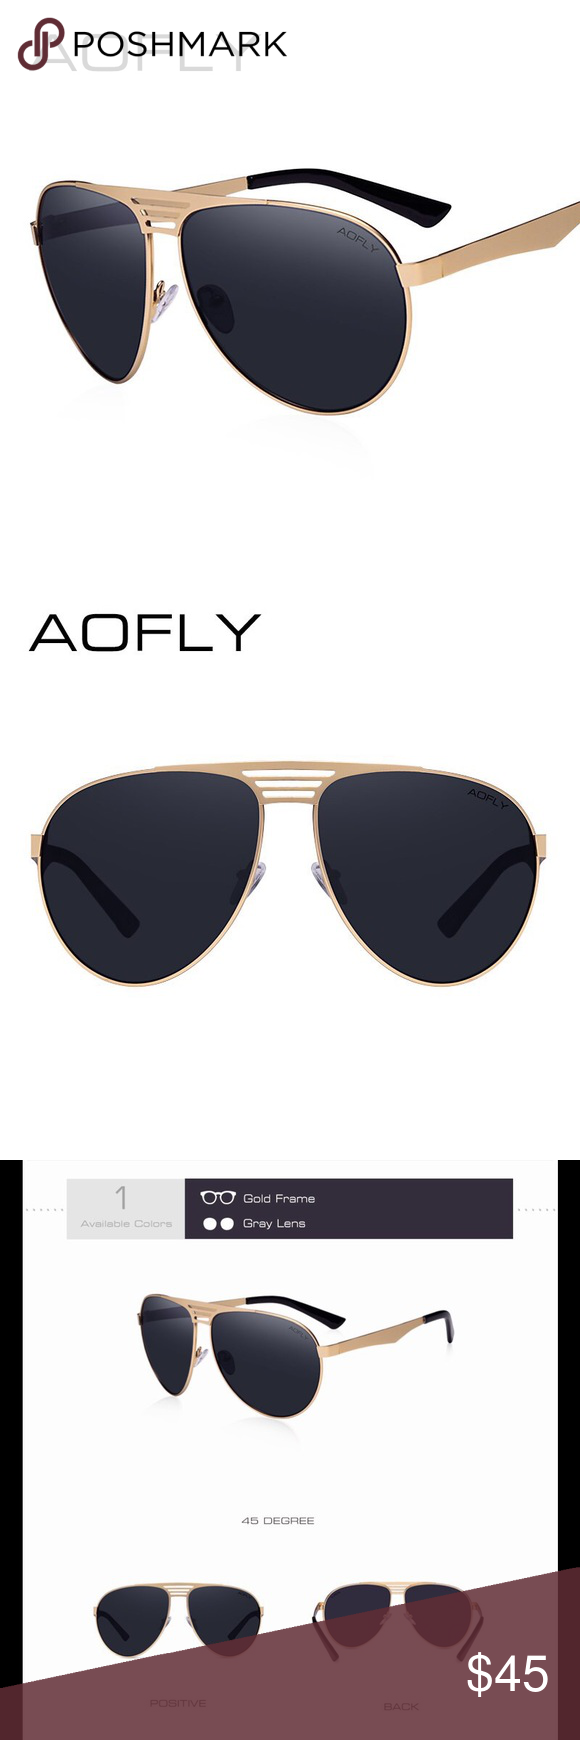 ef23a934b69 AOFLY Authentic Aviator Men s Sunglasses High quality material black and  gold metal frame with gray lenses